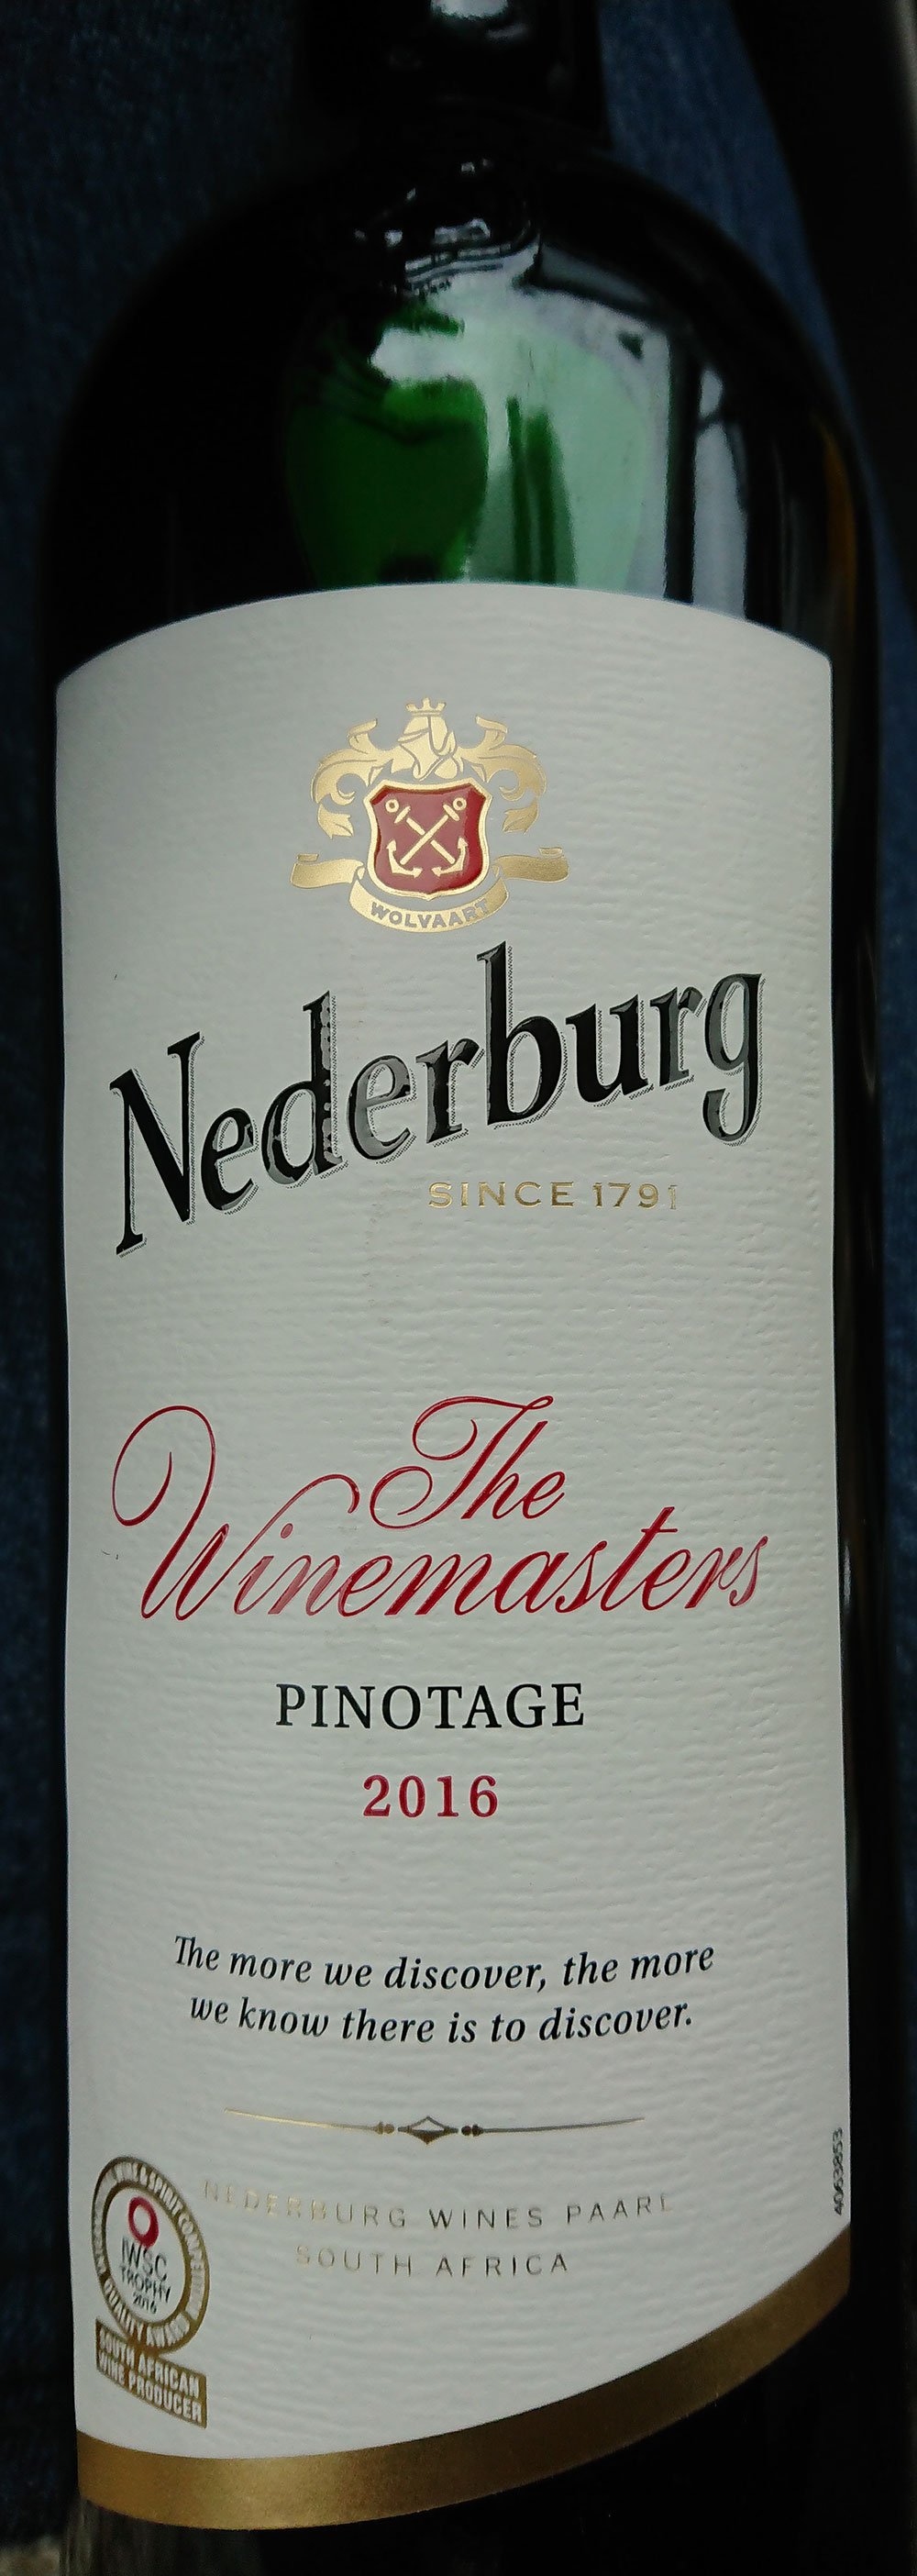 The Winemasters Pinotage ( Nederburg ) 2016